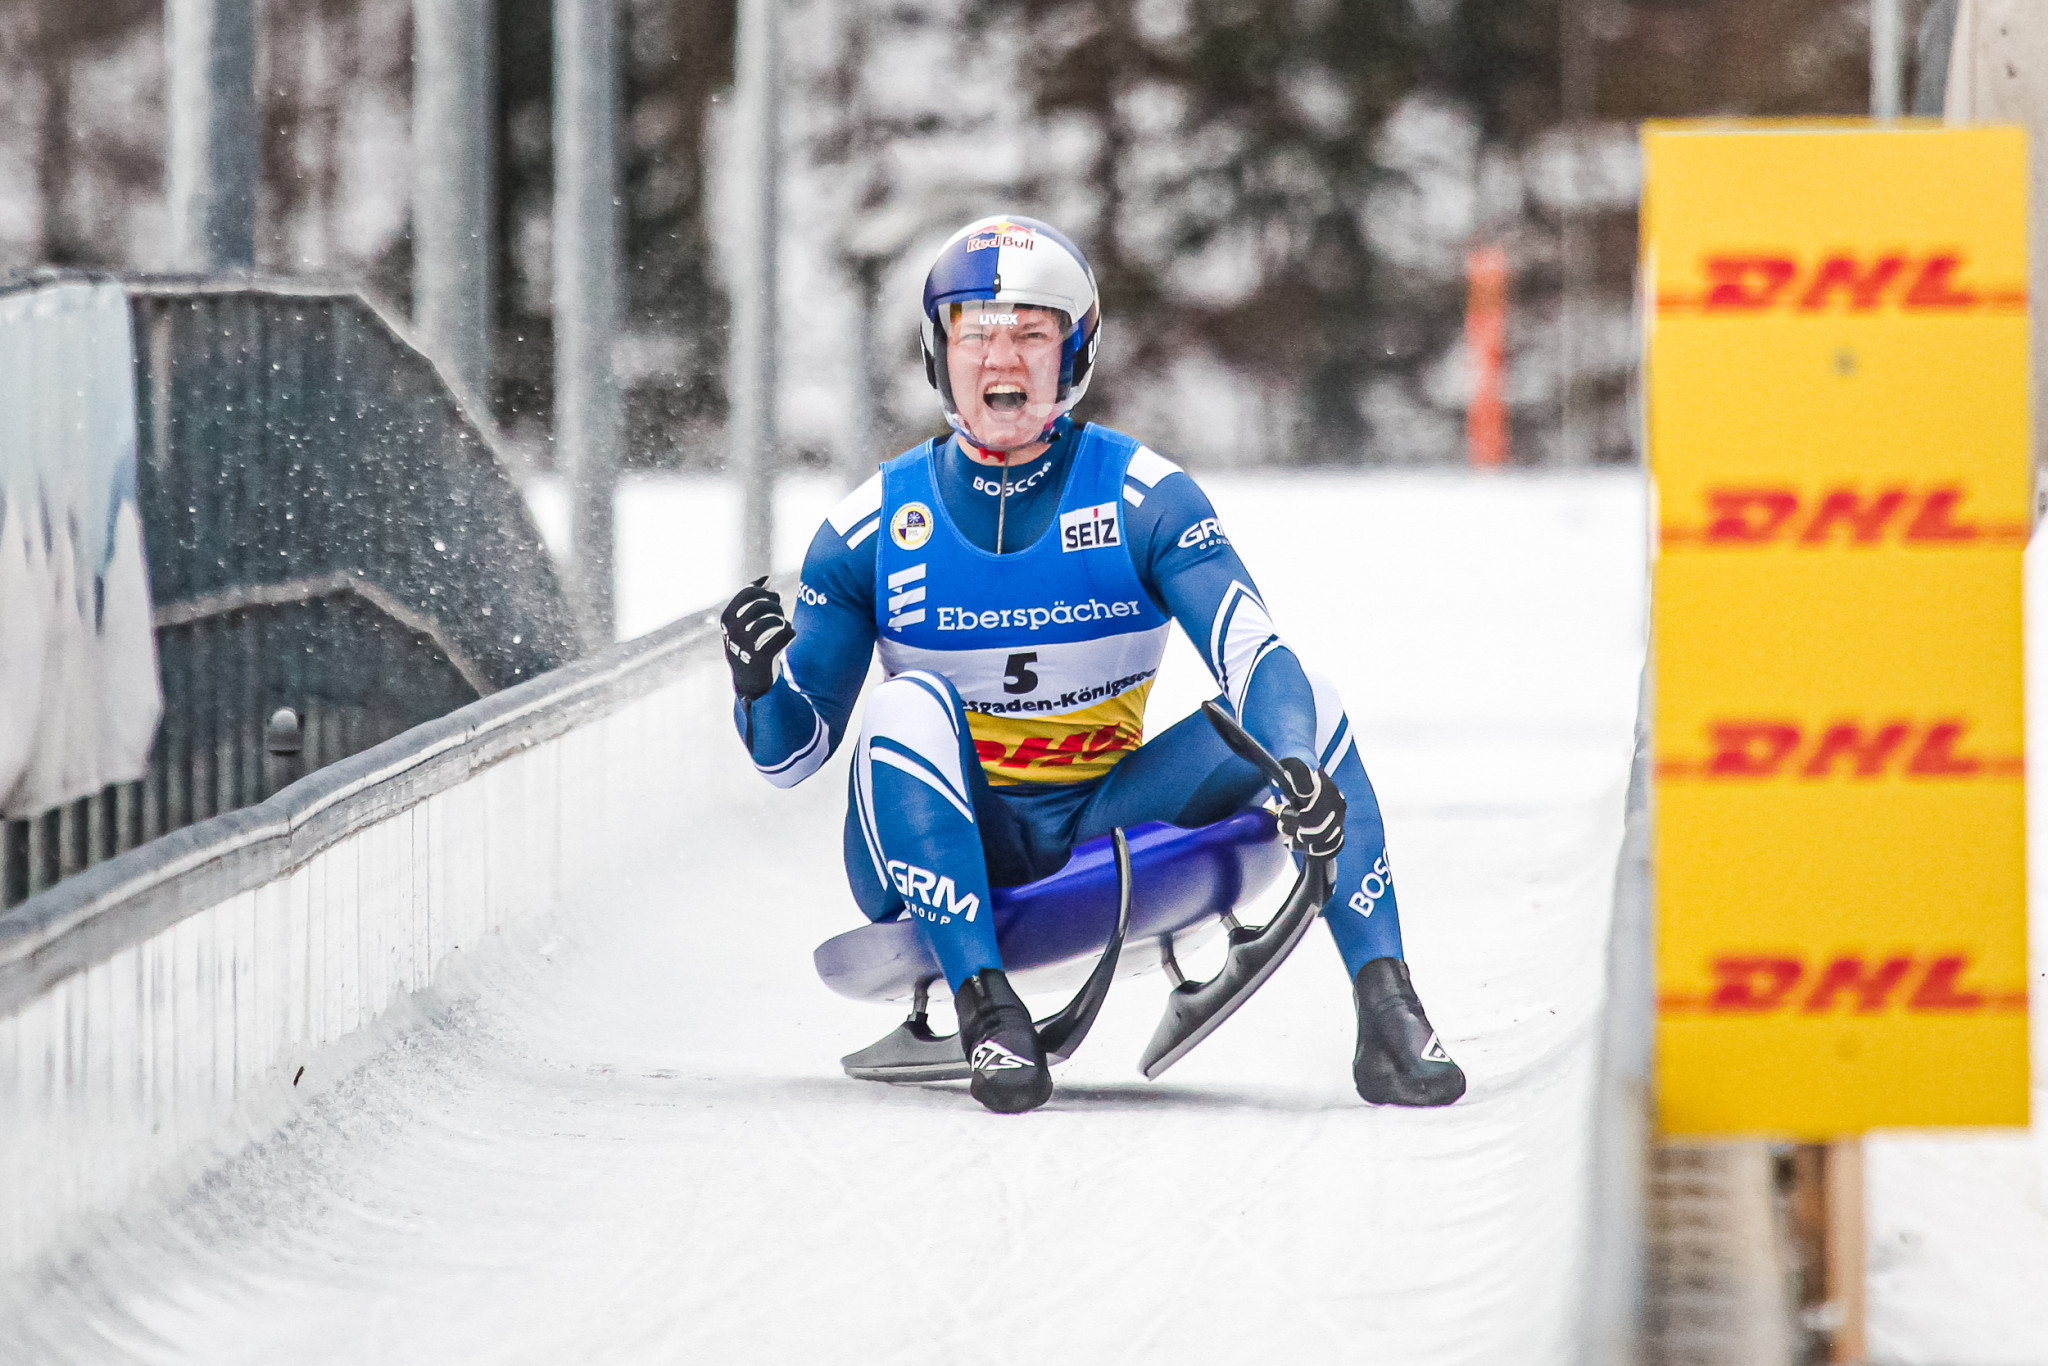 Roman Repilov successfully defended his FIL World Championship title in Königssee on under the new conditions imposed by WADA for Russian athletes ©Getty Images